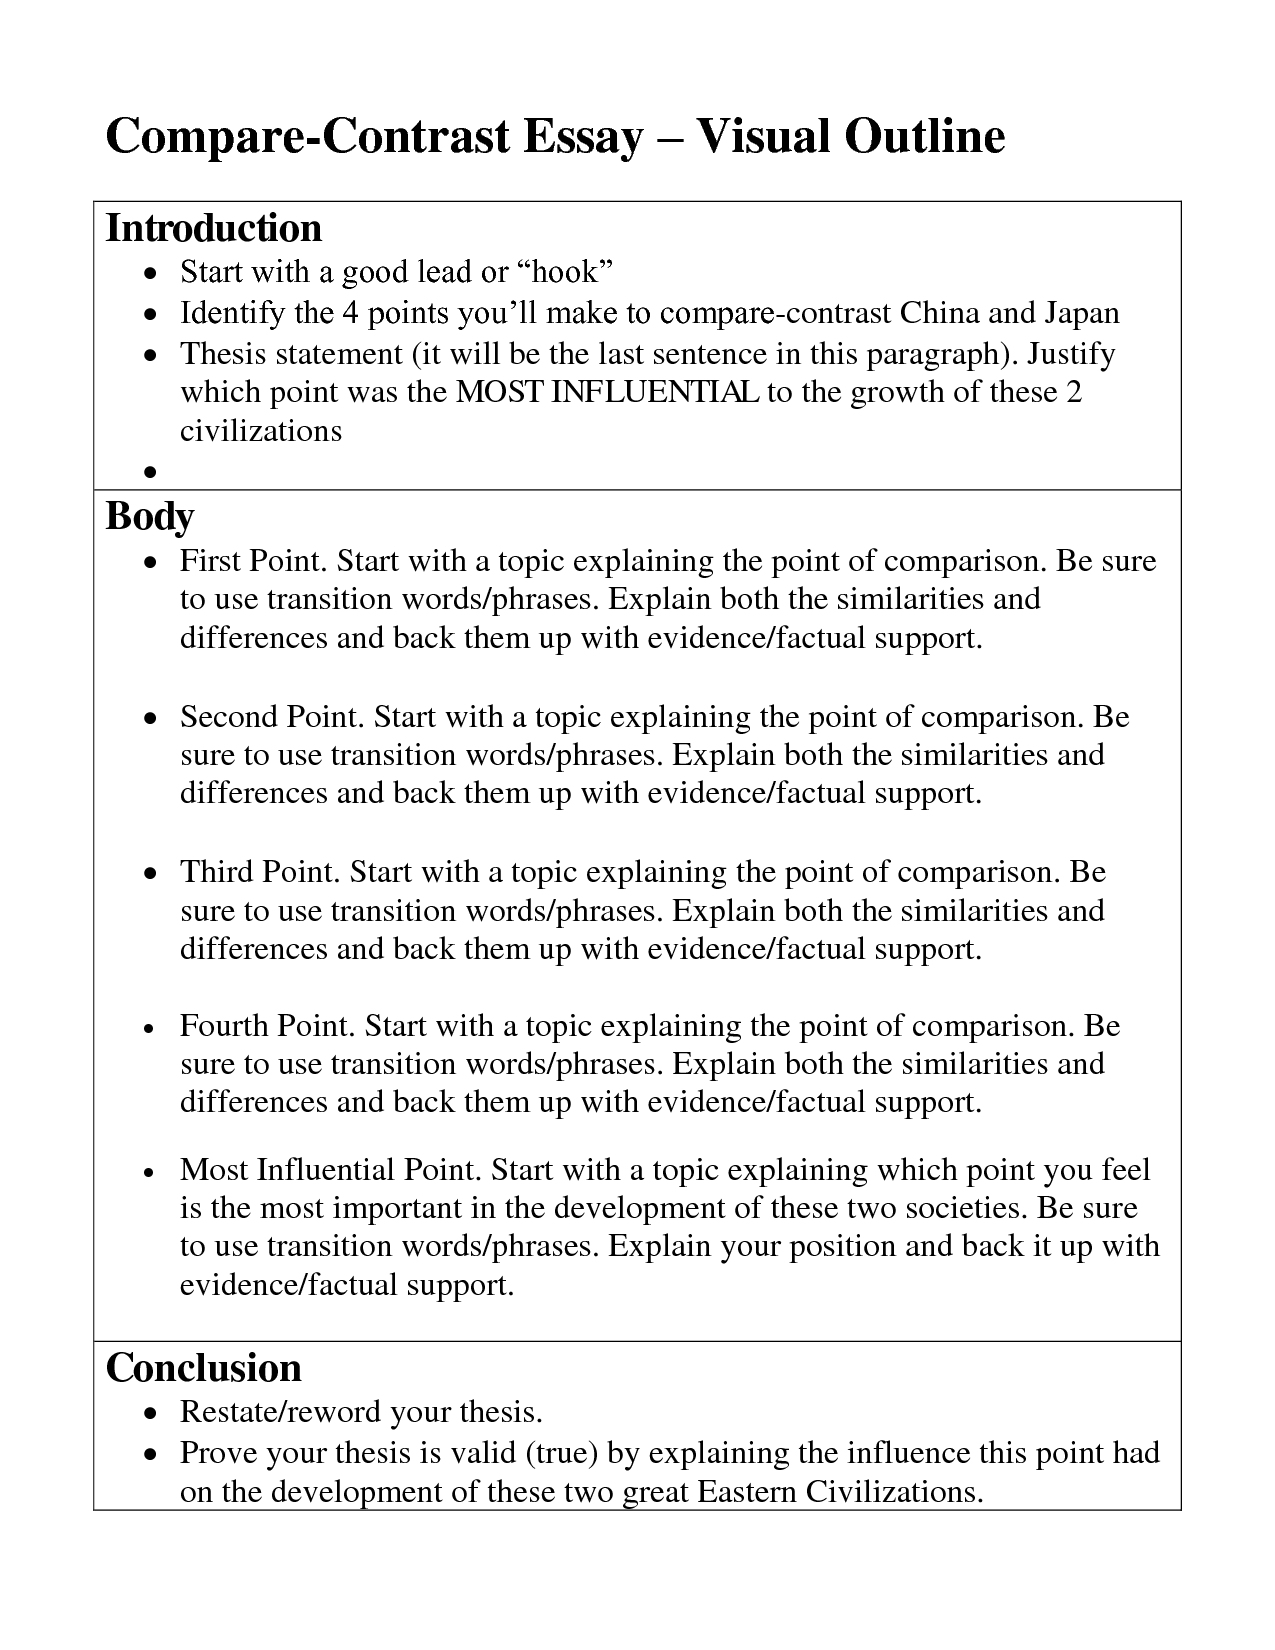 004 How To Write Compare And Contrast Essay Striking Block Method Conclusion Full